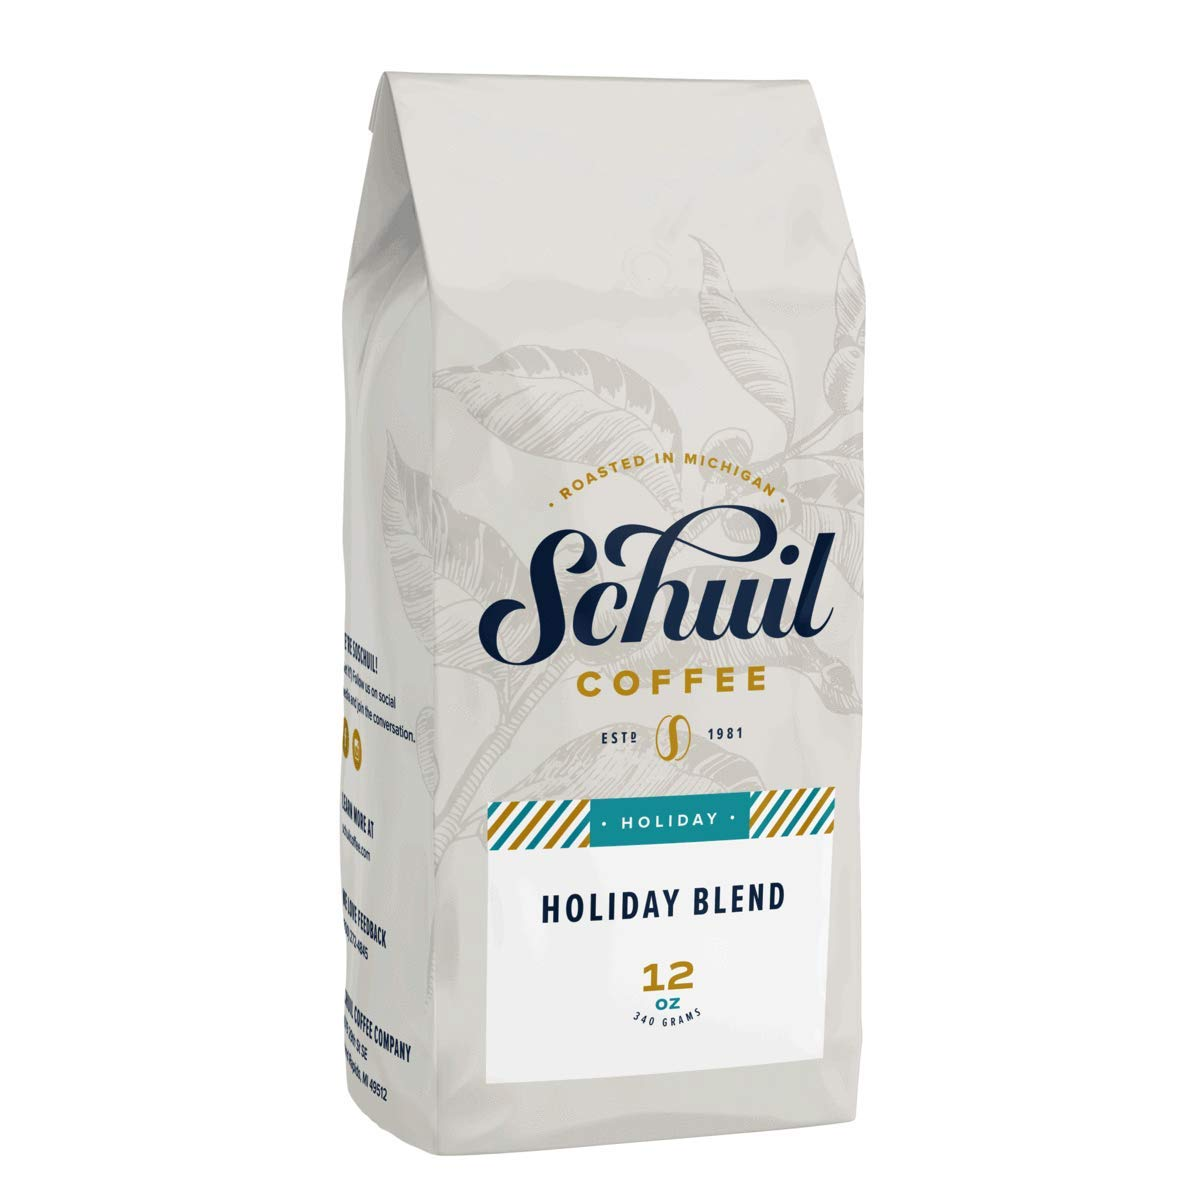 Schuil Coffee Beans Review